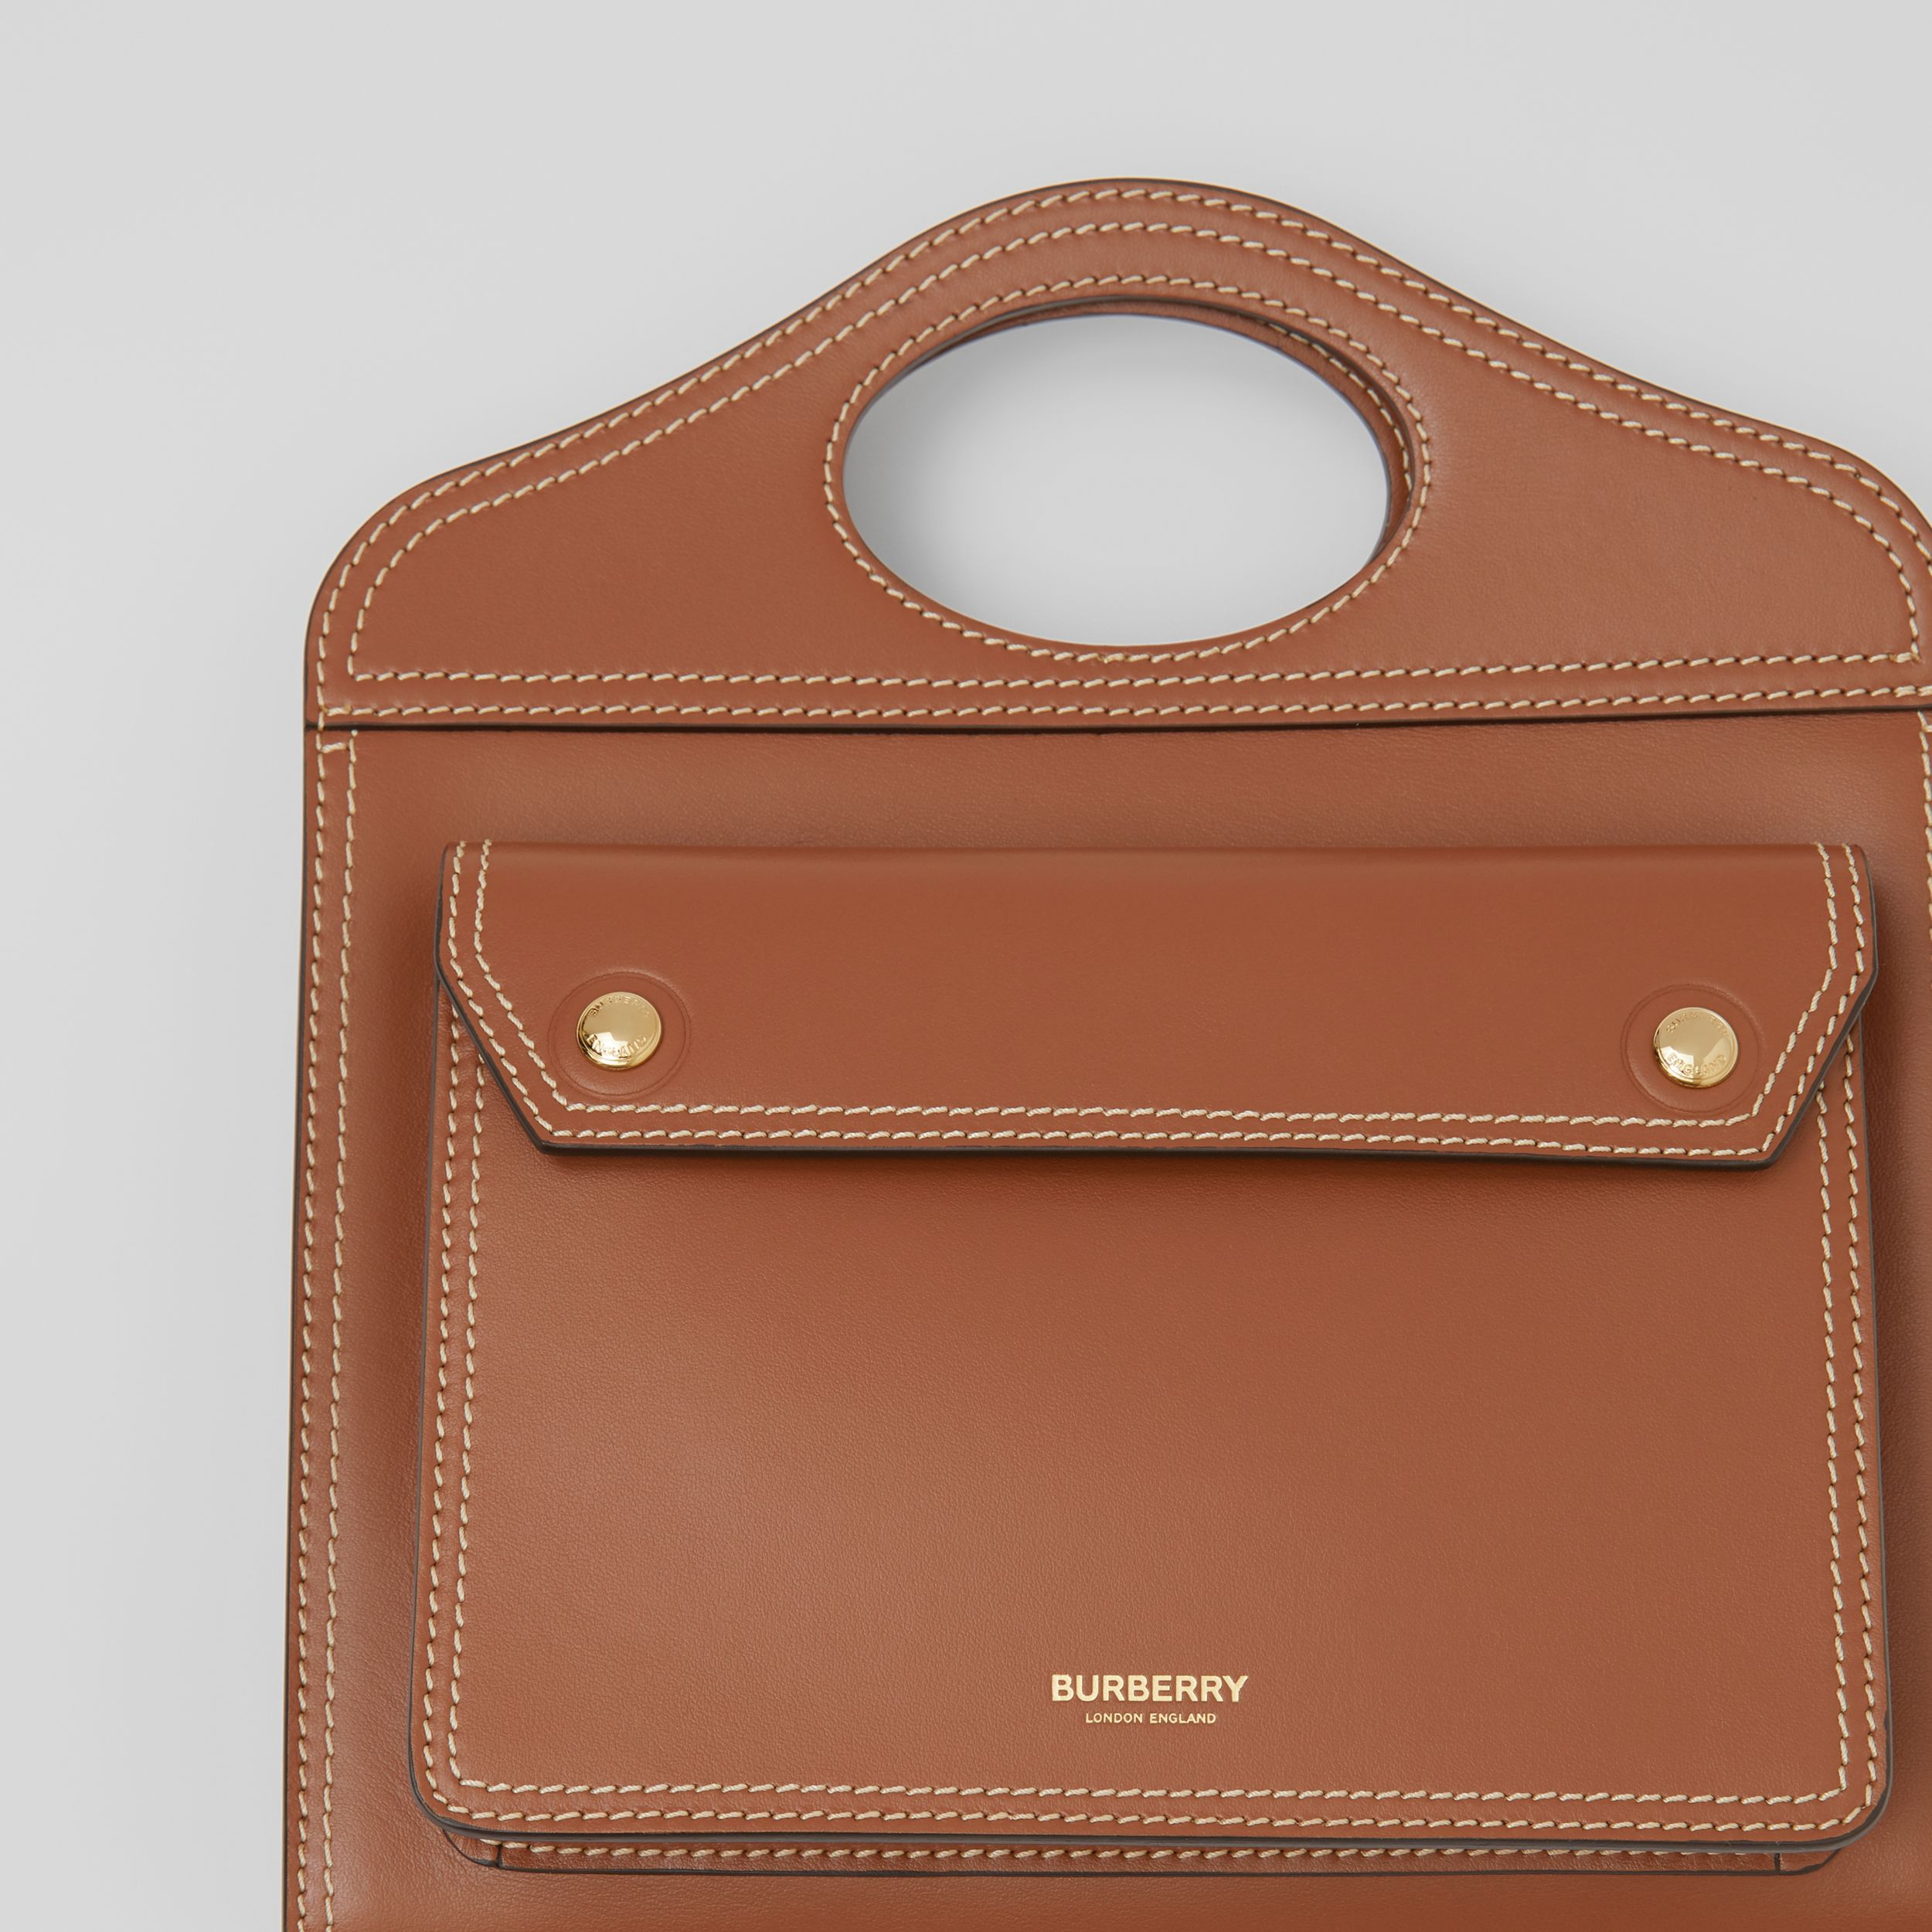 Mini Topstitched Leather Pocket Bag in Malt Brown - Women | Burberry - 2